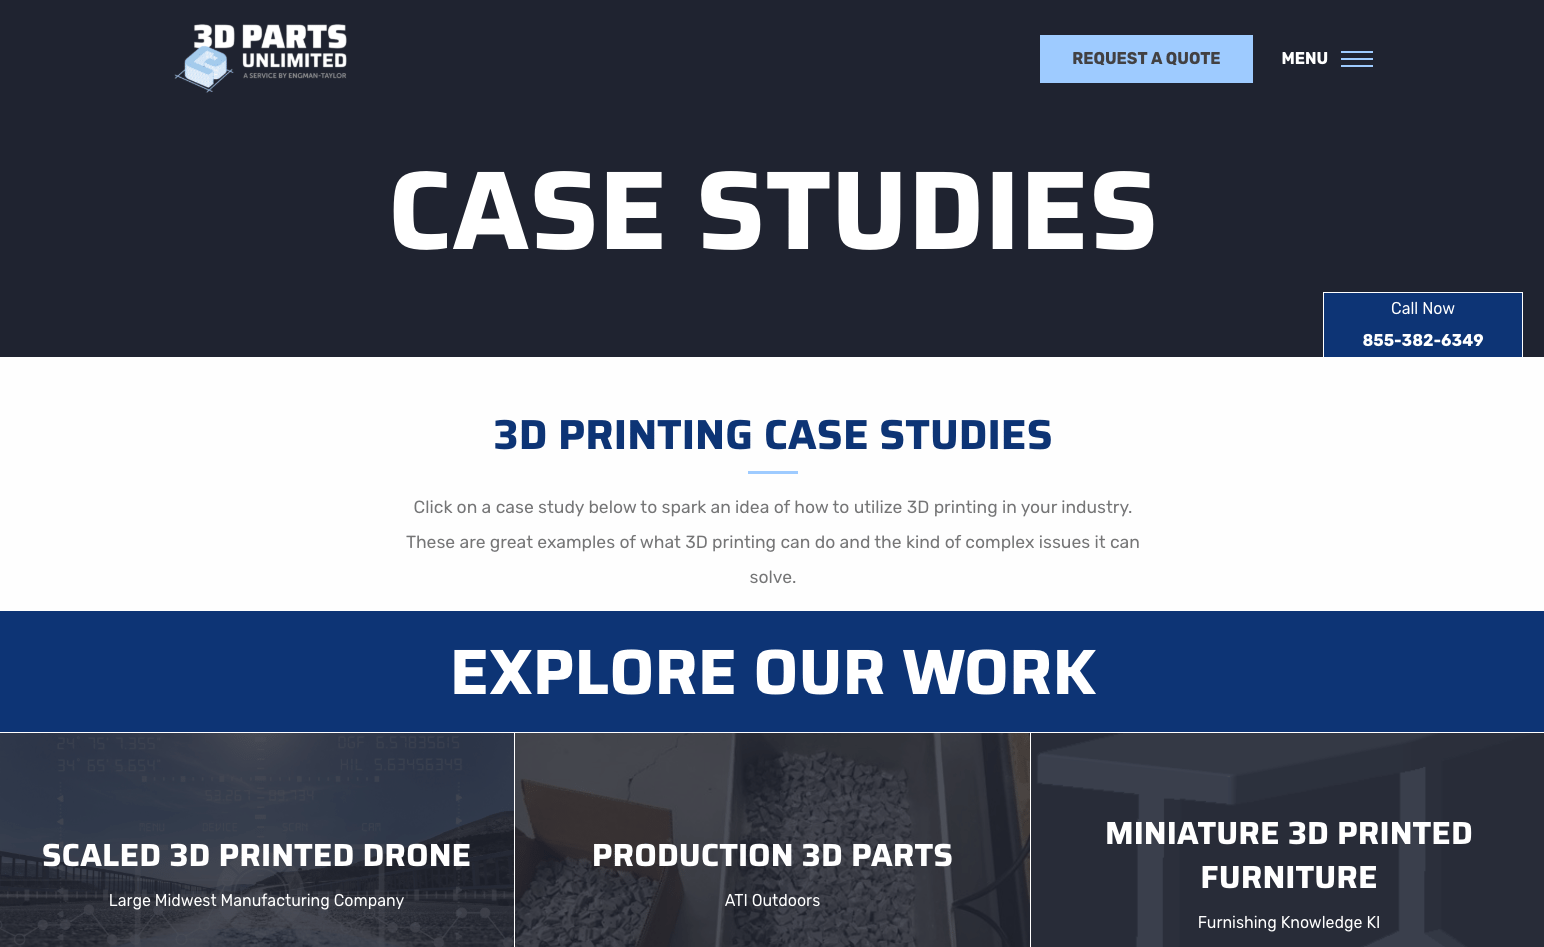 3D Parts Unlimited case studies web page